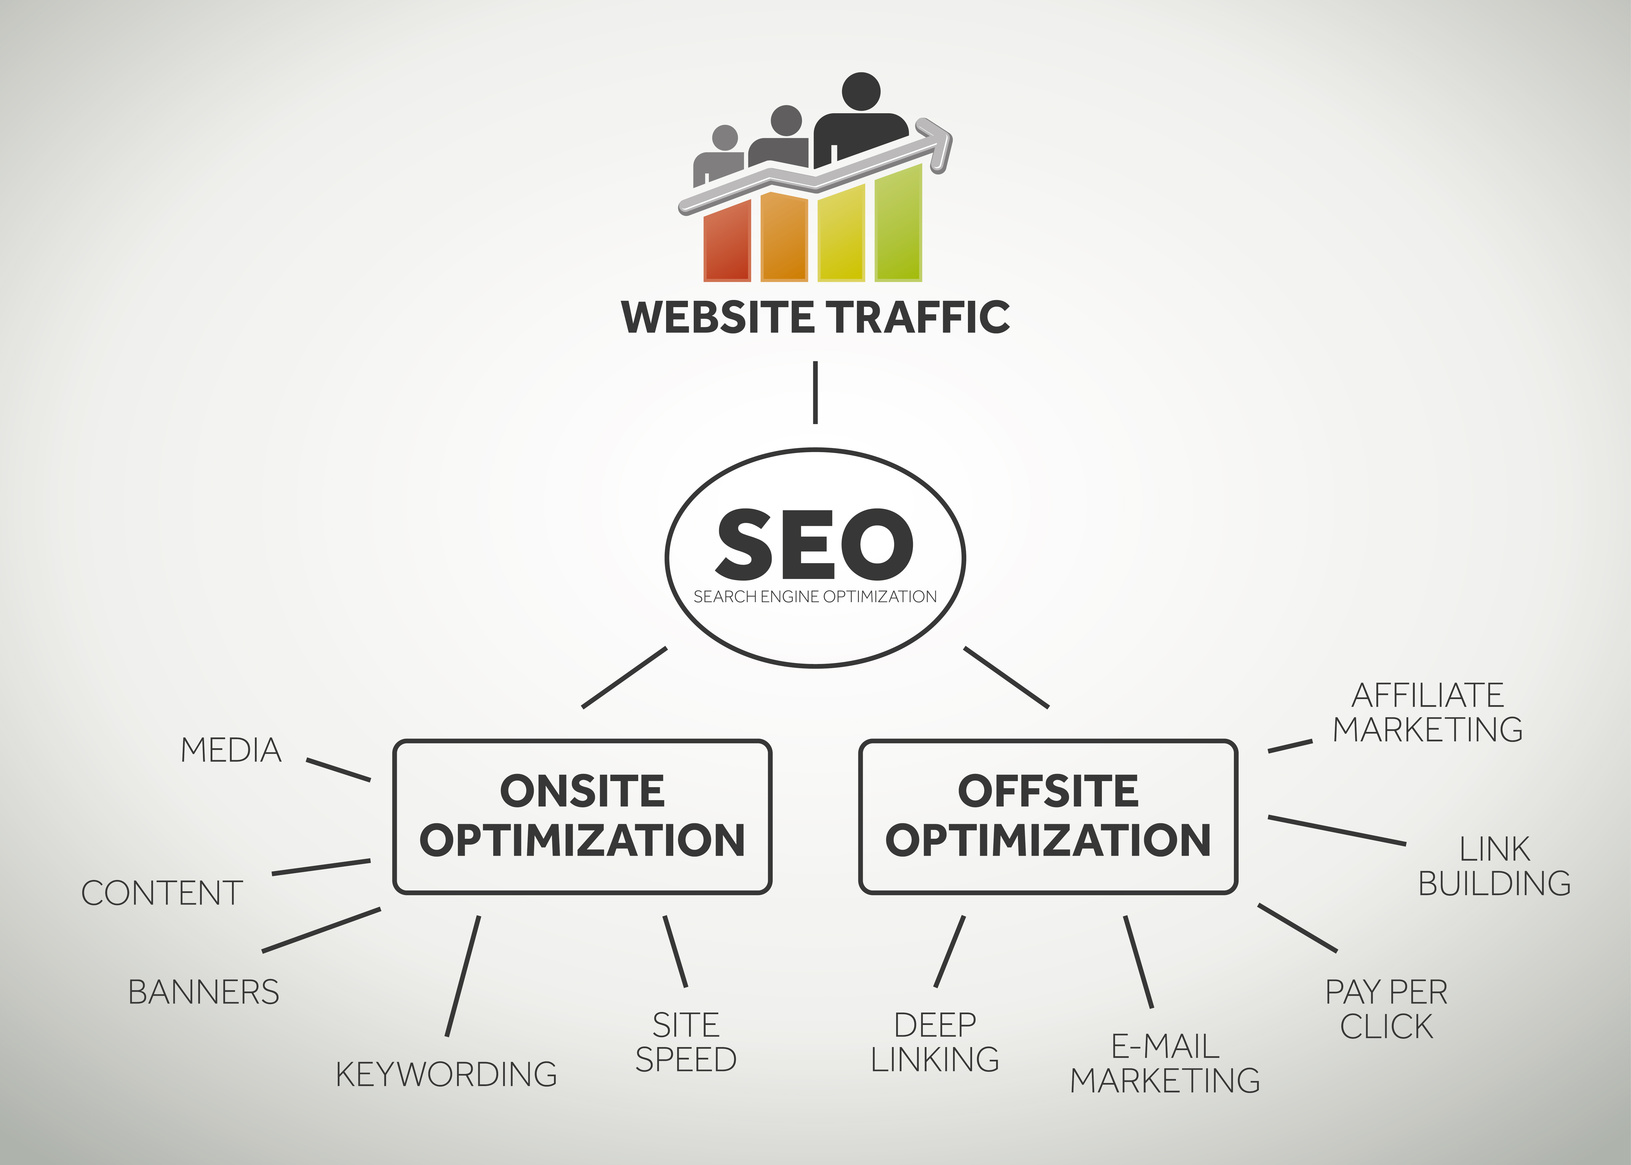 10 Onsite Optimization Tips For a Great User Experience